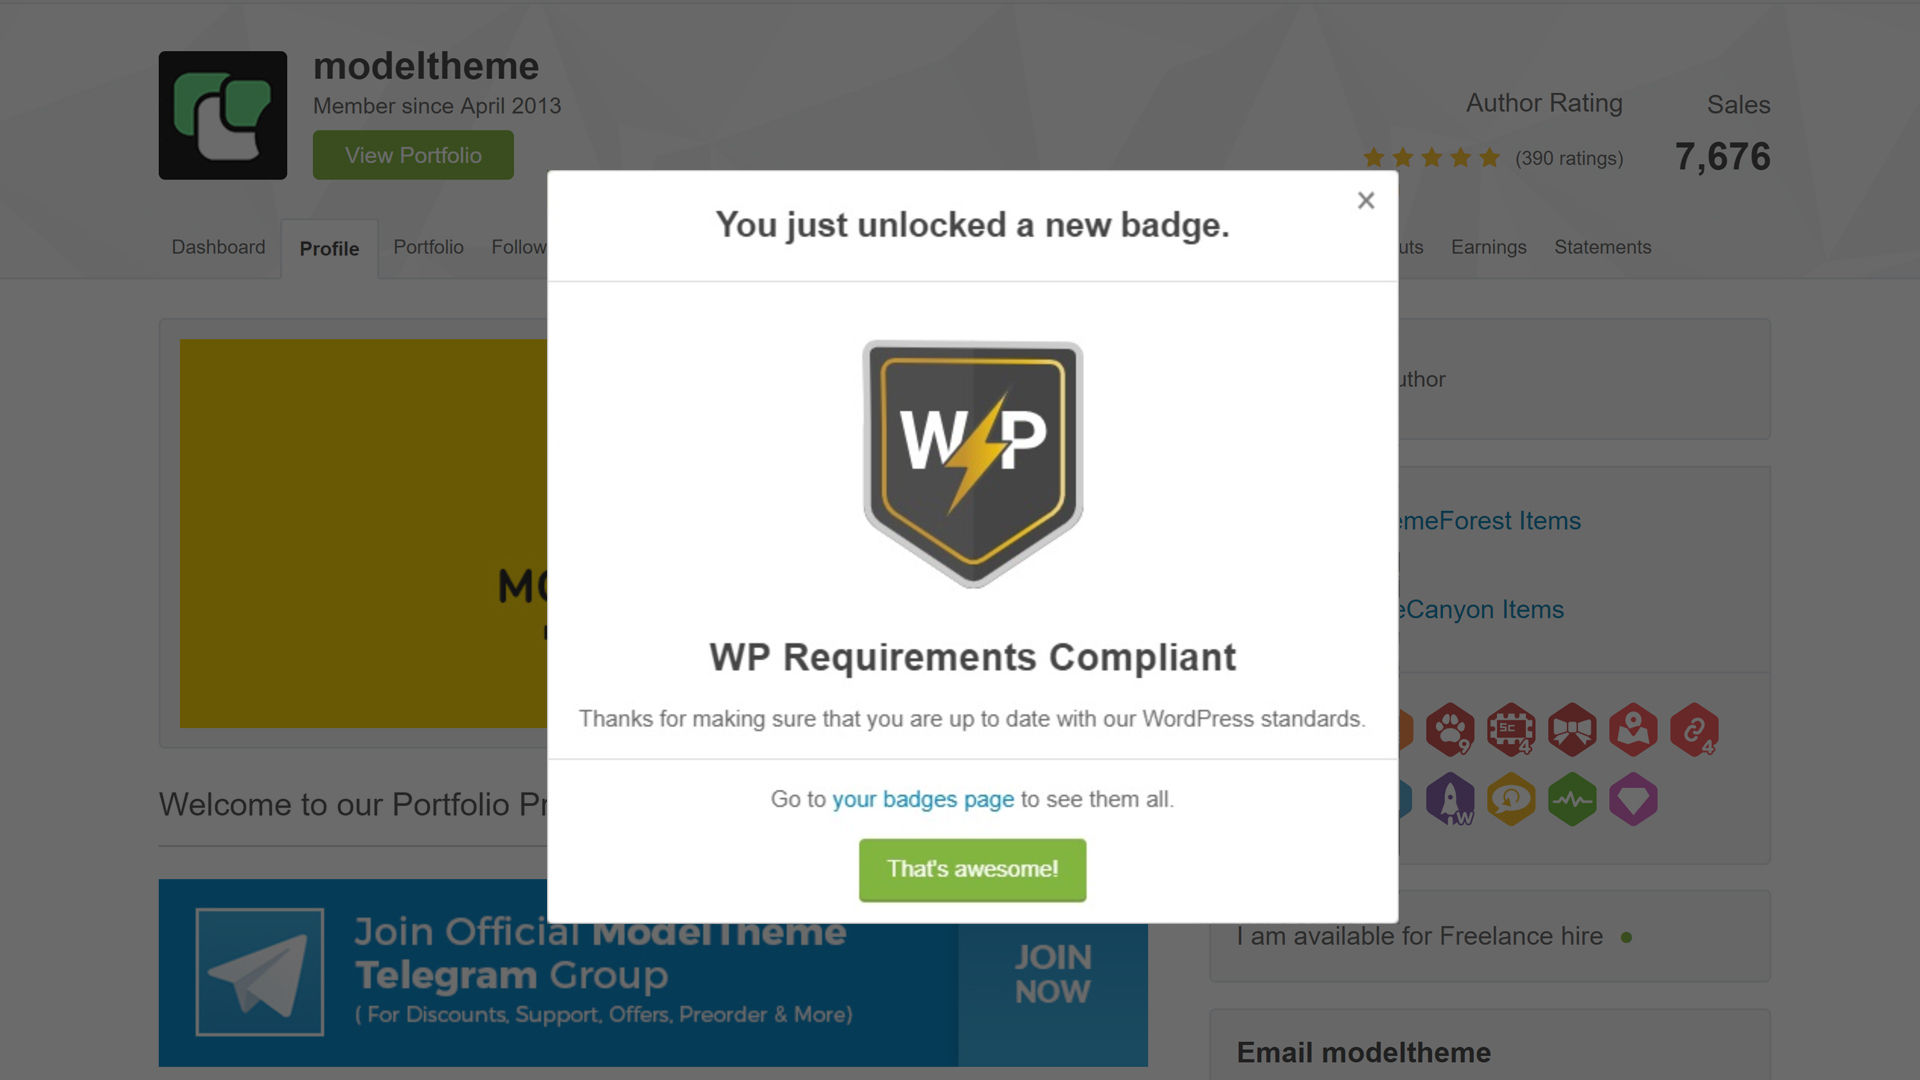 envato wp compliant badge